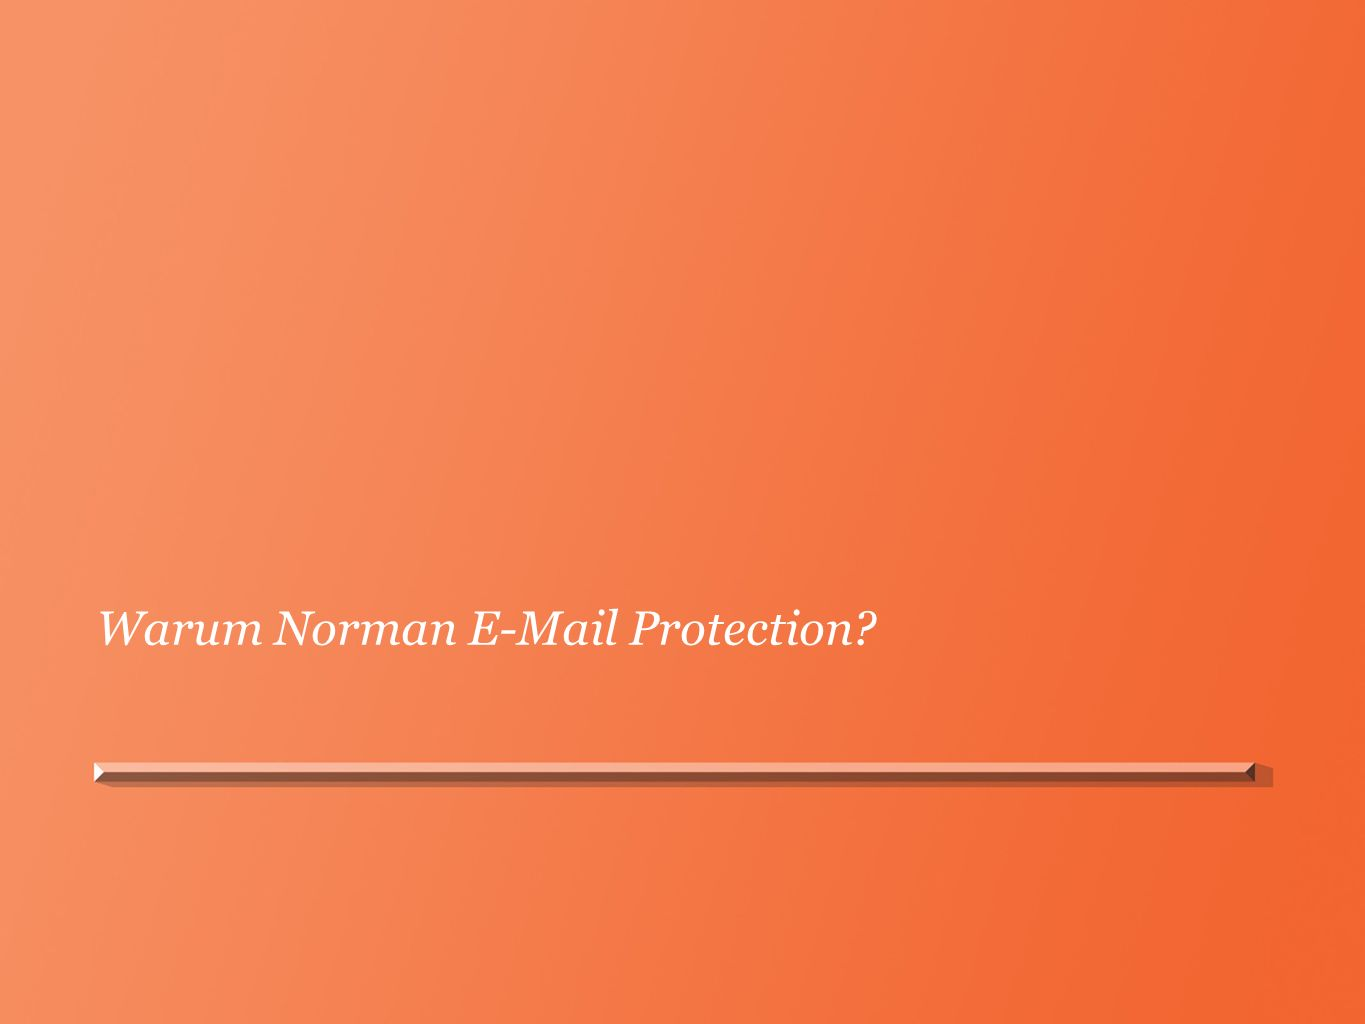 Warum Norman E-Mail Protection?